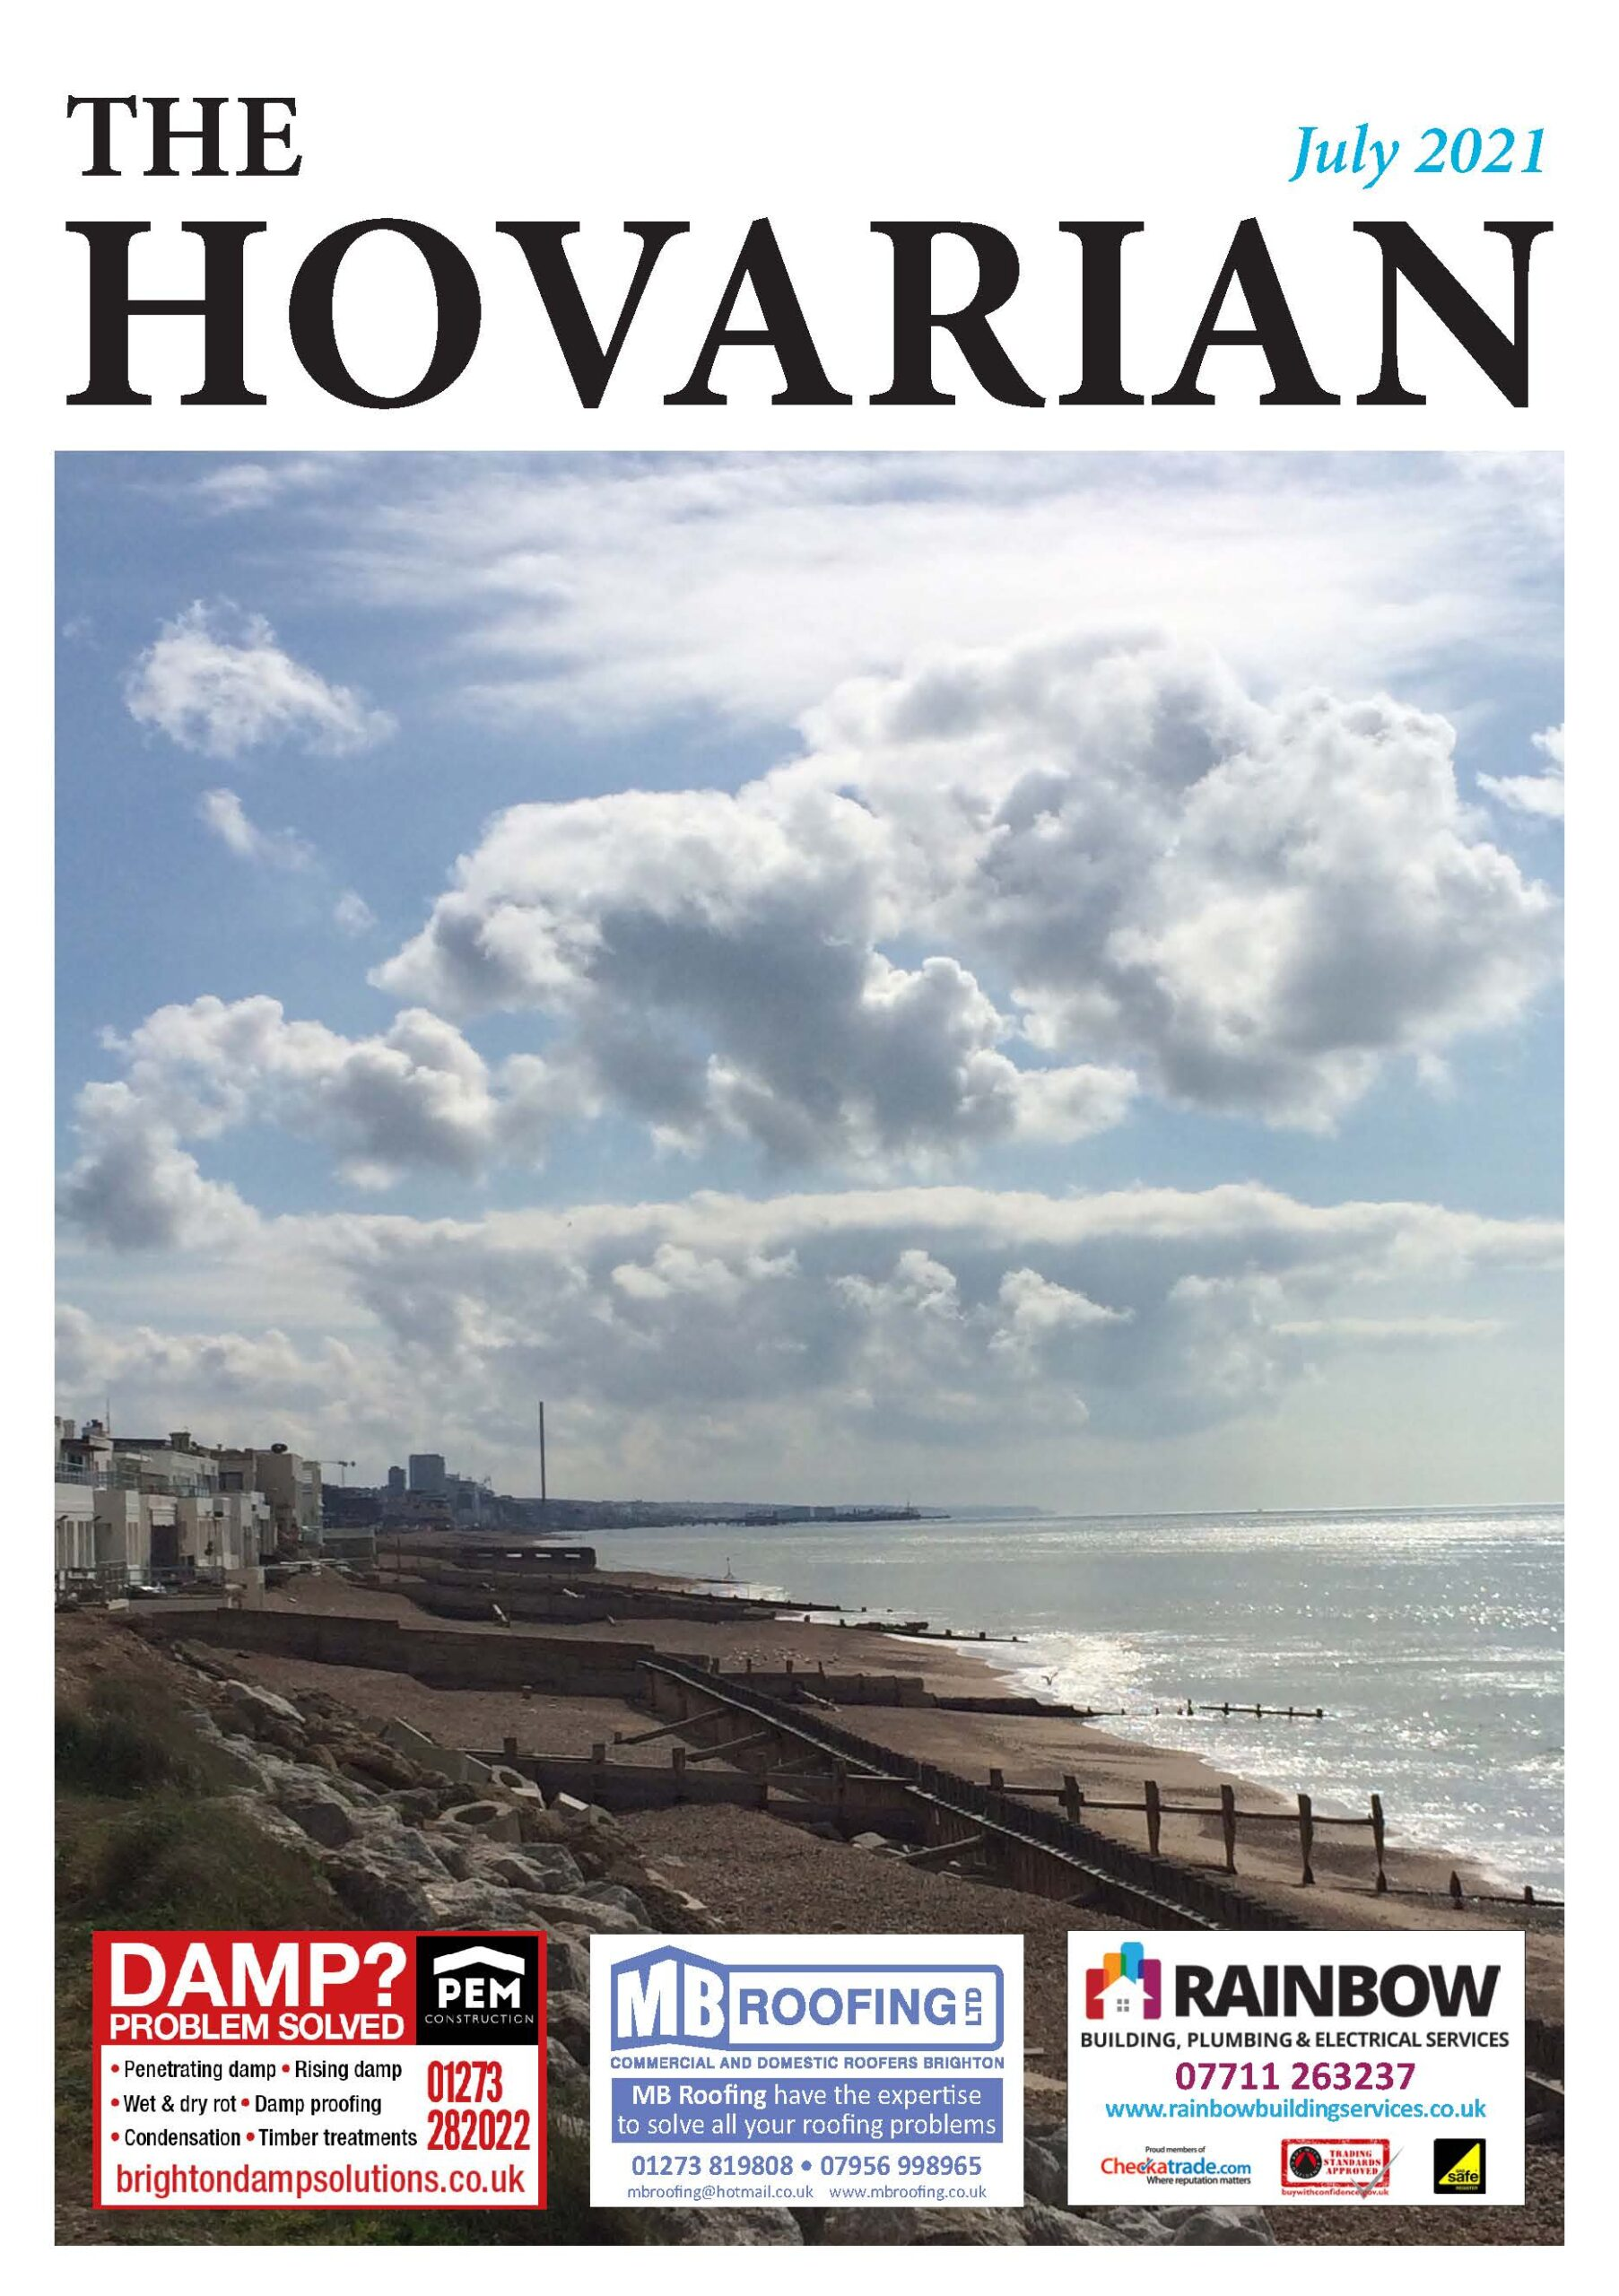 The Hovarian